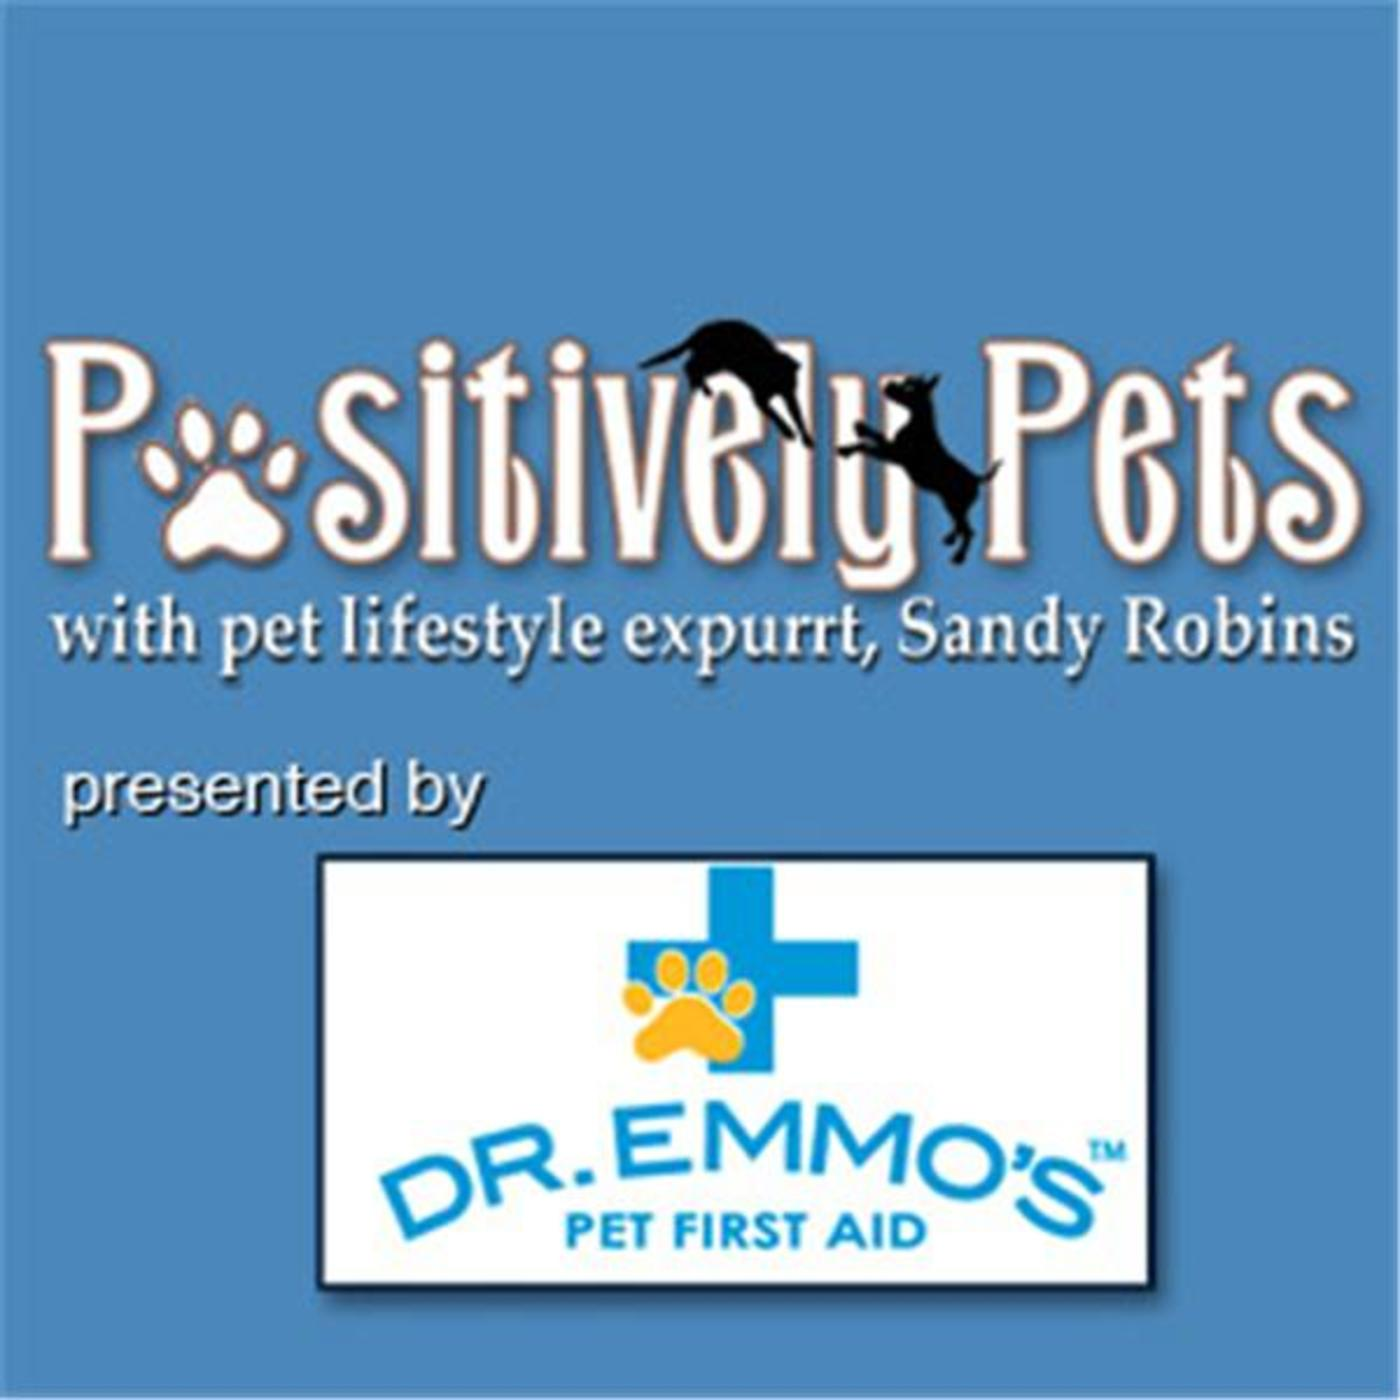 Pawsitively Pets with Sandy Robins